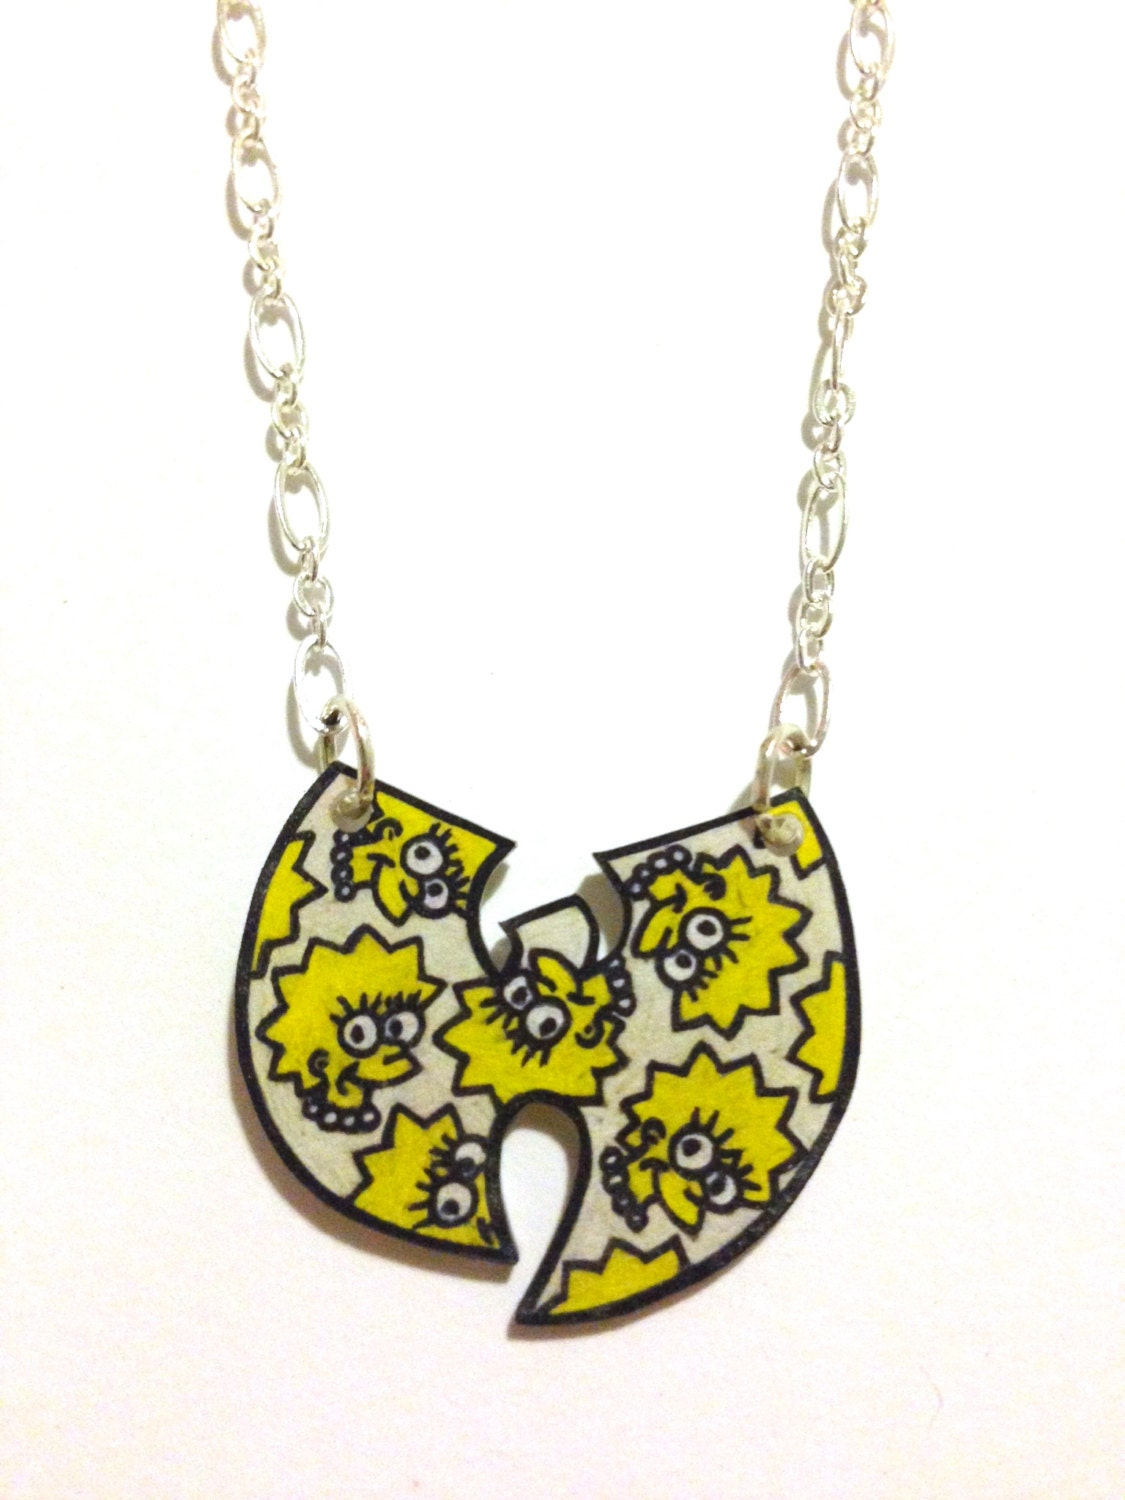 simpsons meets wu tang necklace by houseofhades on etsy